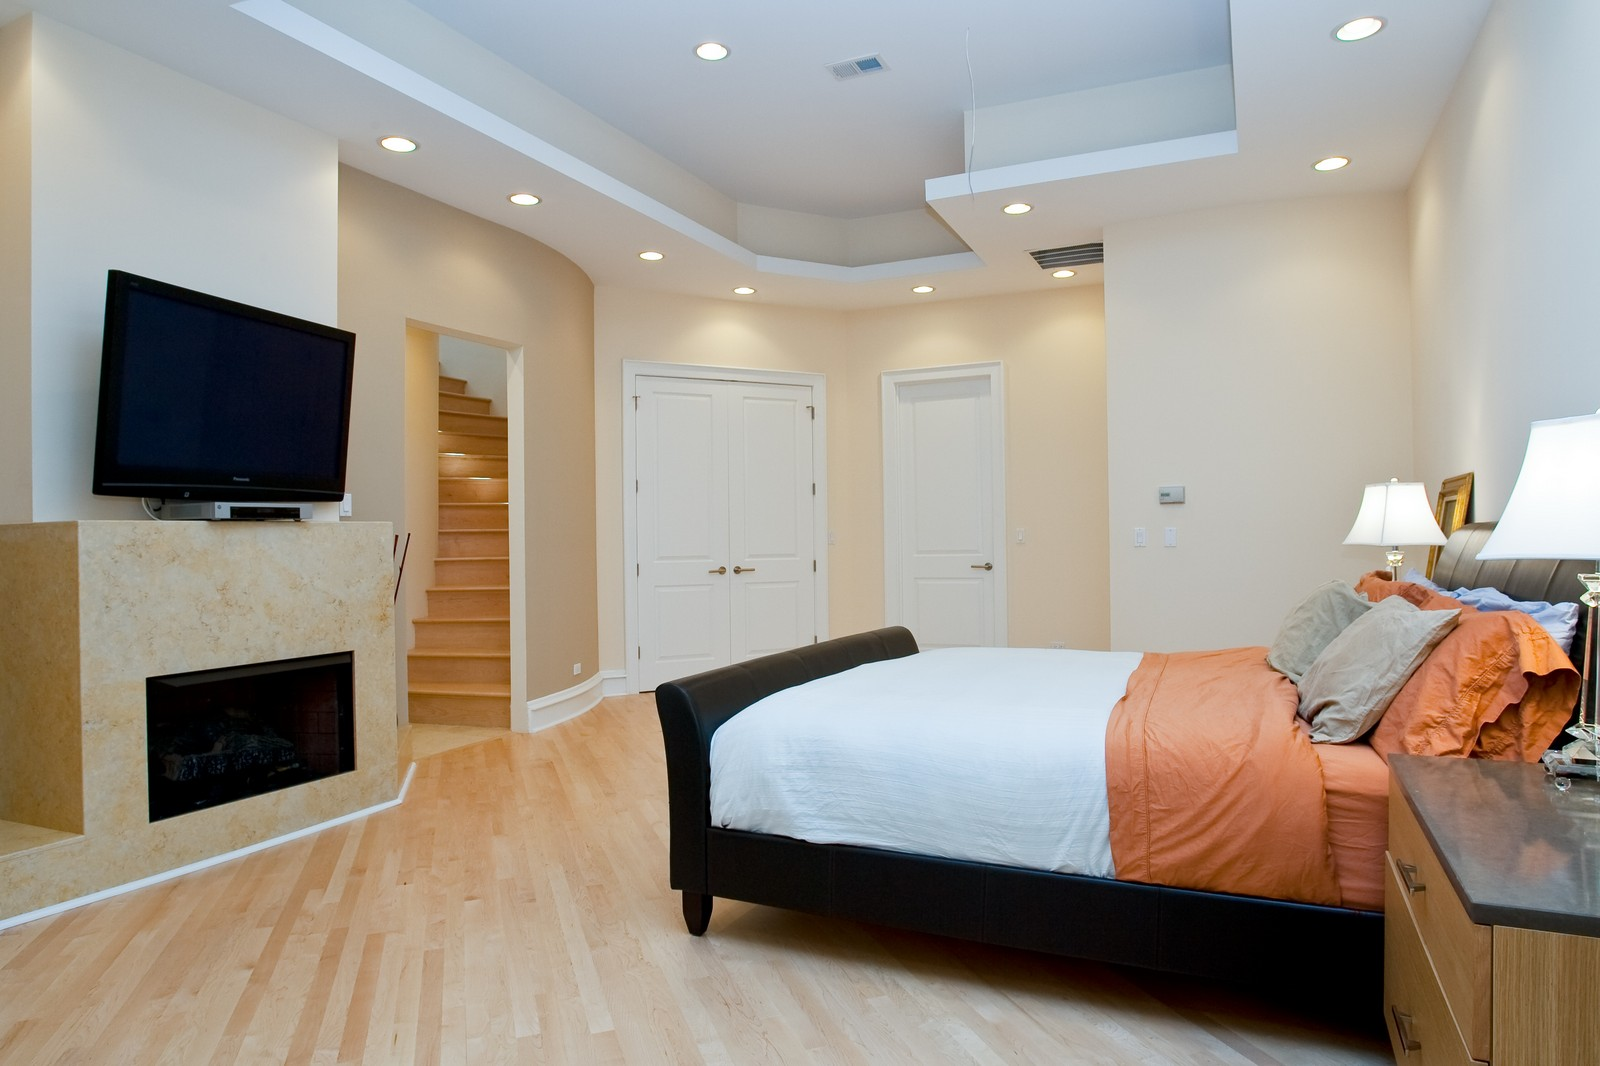 Real Estate Photography - 319 W Erie, Ph, Chicago, IL, 60654 - Master Bedroom